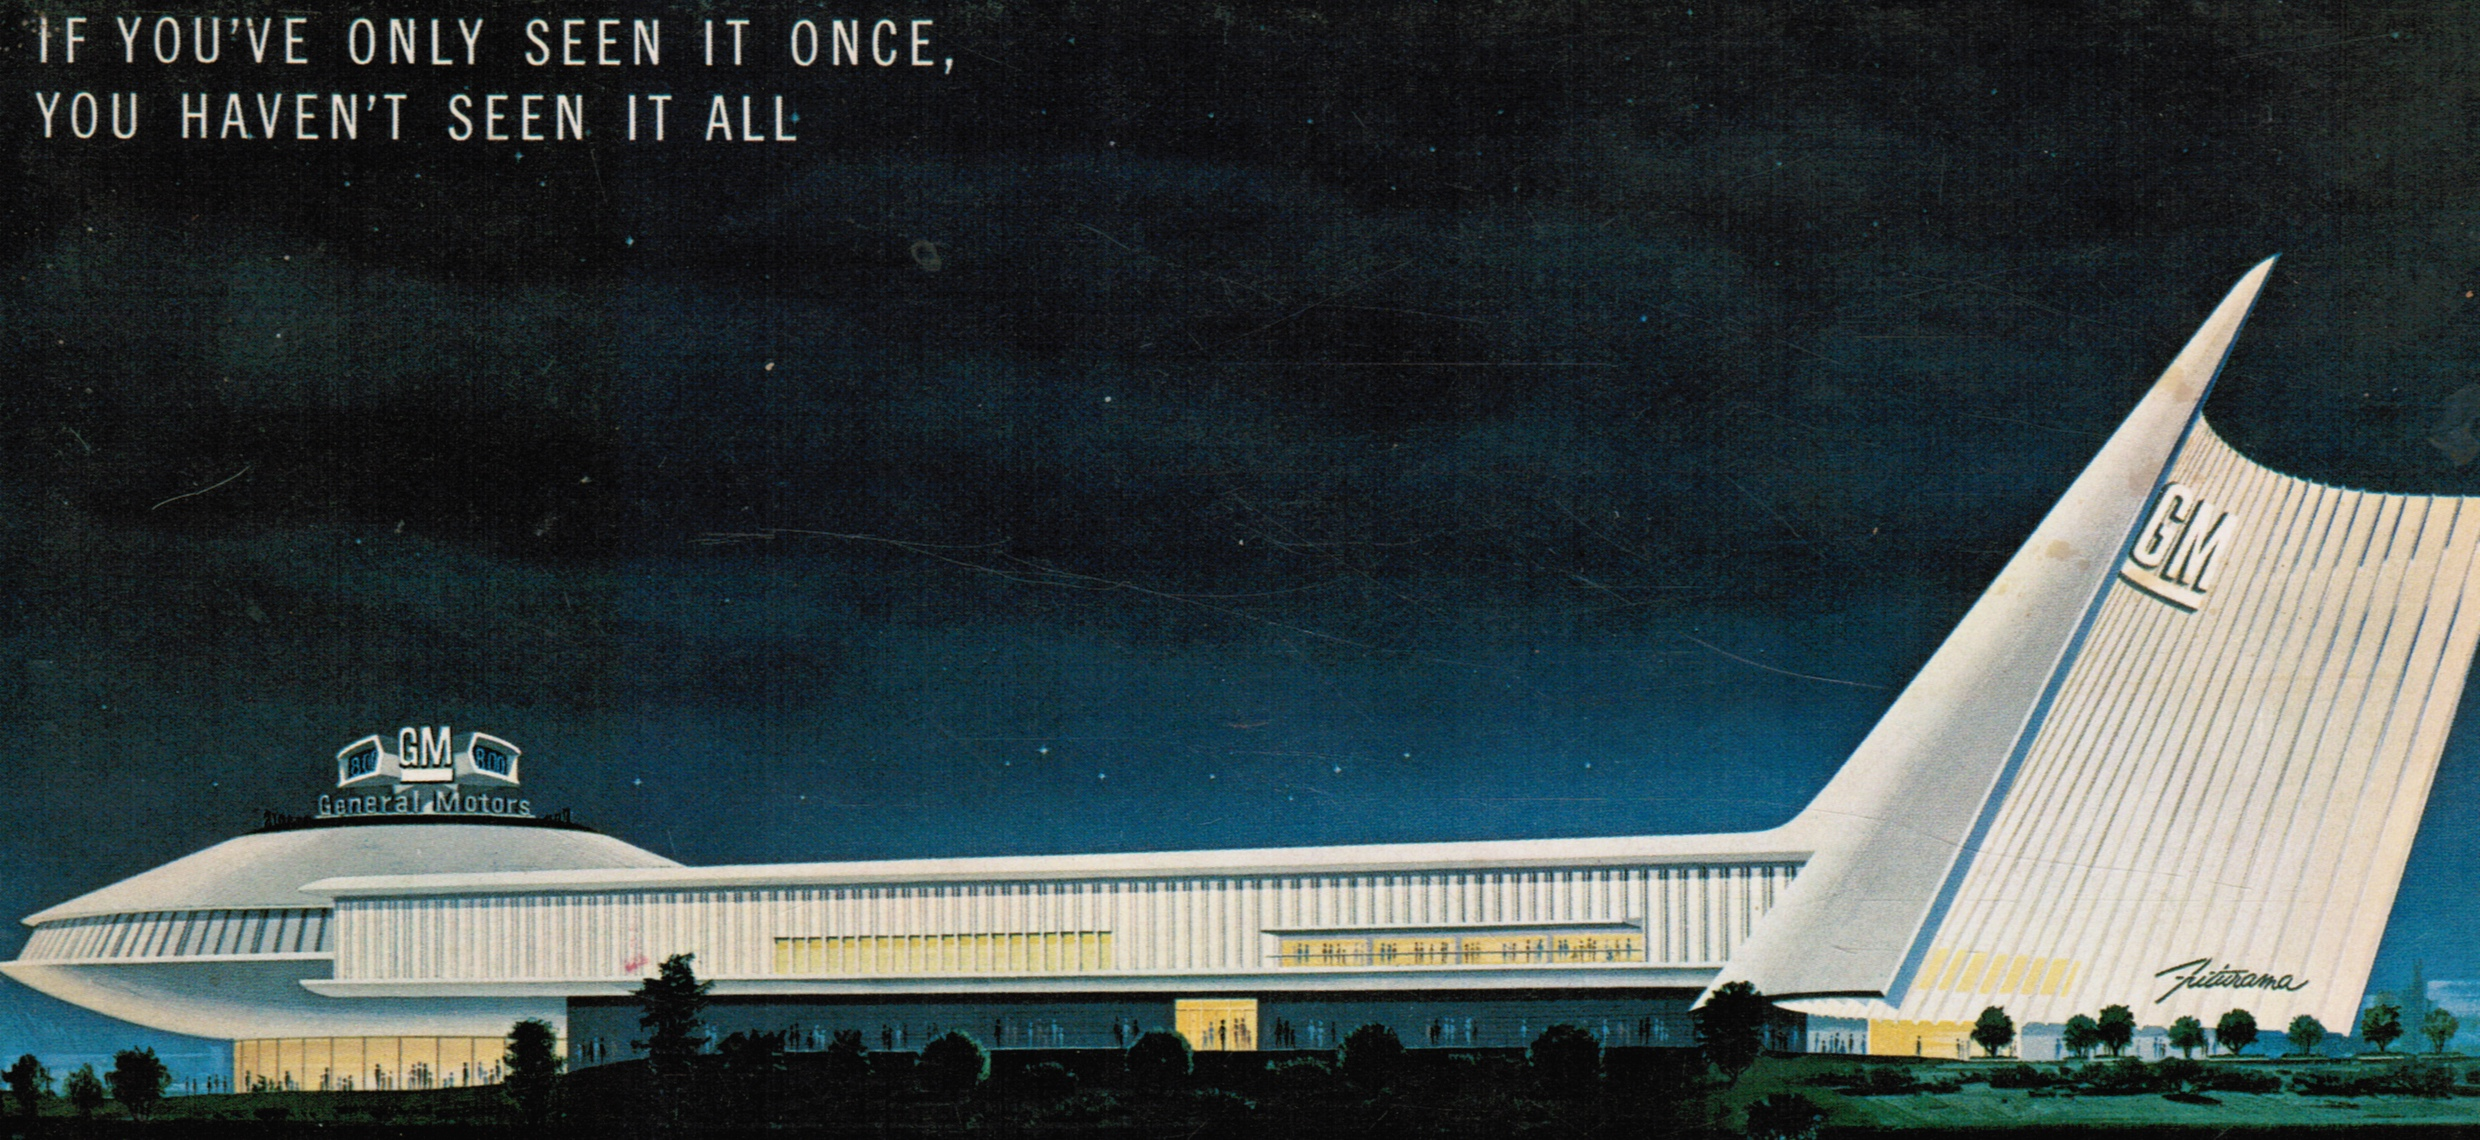 Image for General Motors FUTURAMA - New York World's Fair - 1965 - If You've Only Seen It Once, You Haven't Seen It All